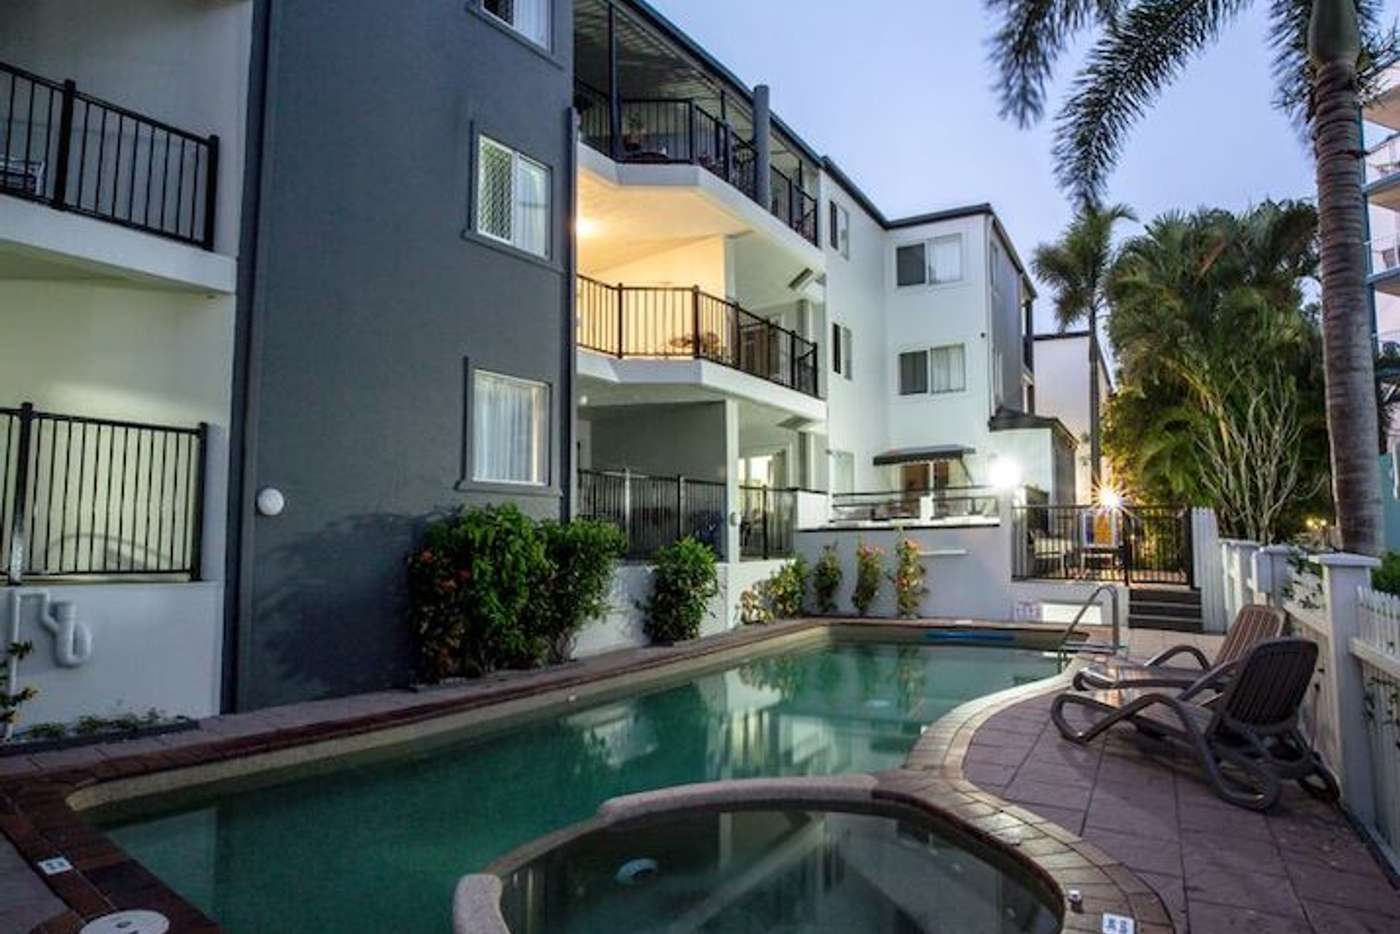 Main view of Homely apartment listing, 396 Charlton Esplanade, Torquay QLD 4655